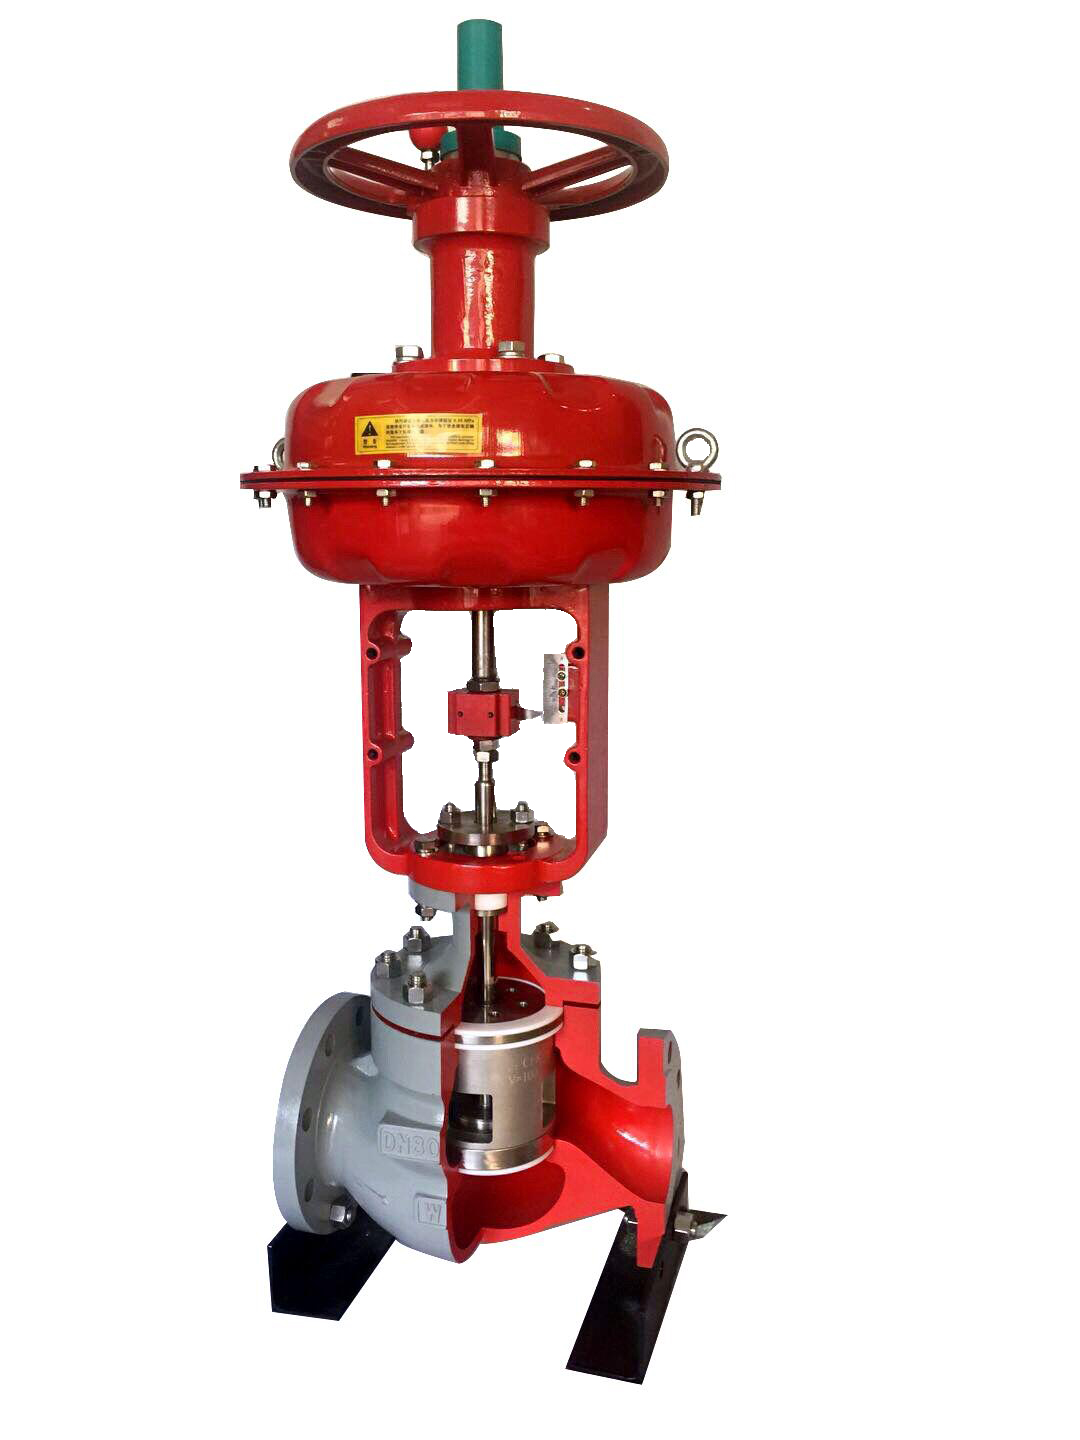 HPS Pneumatic Top-Guided High-Pressure Single-Seated Control Valve